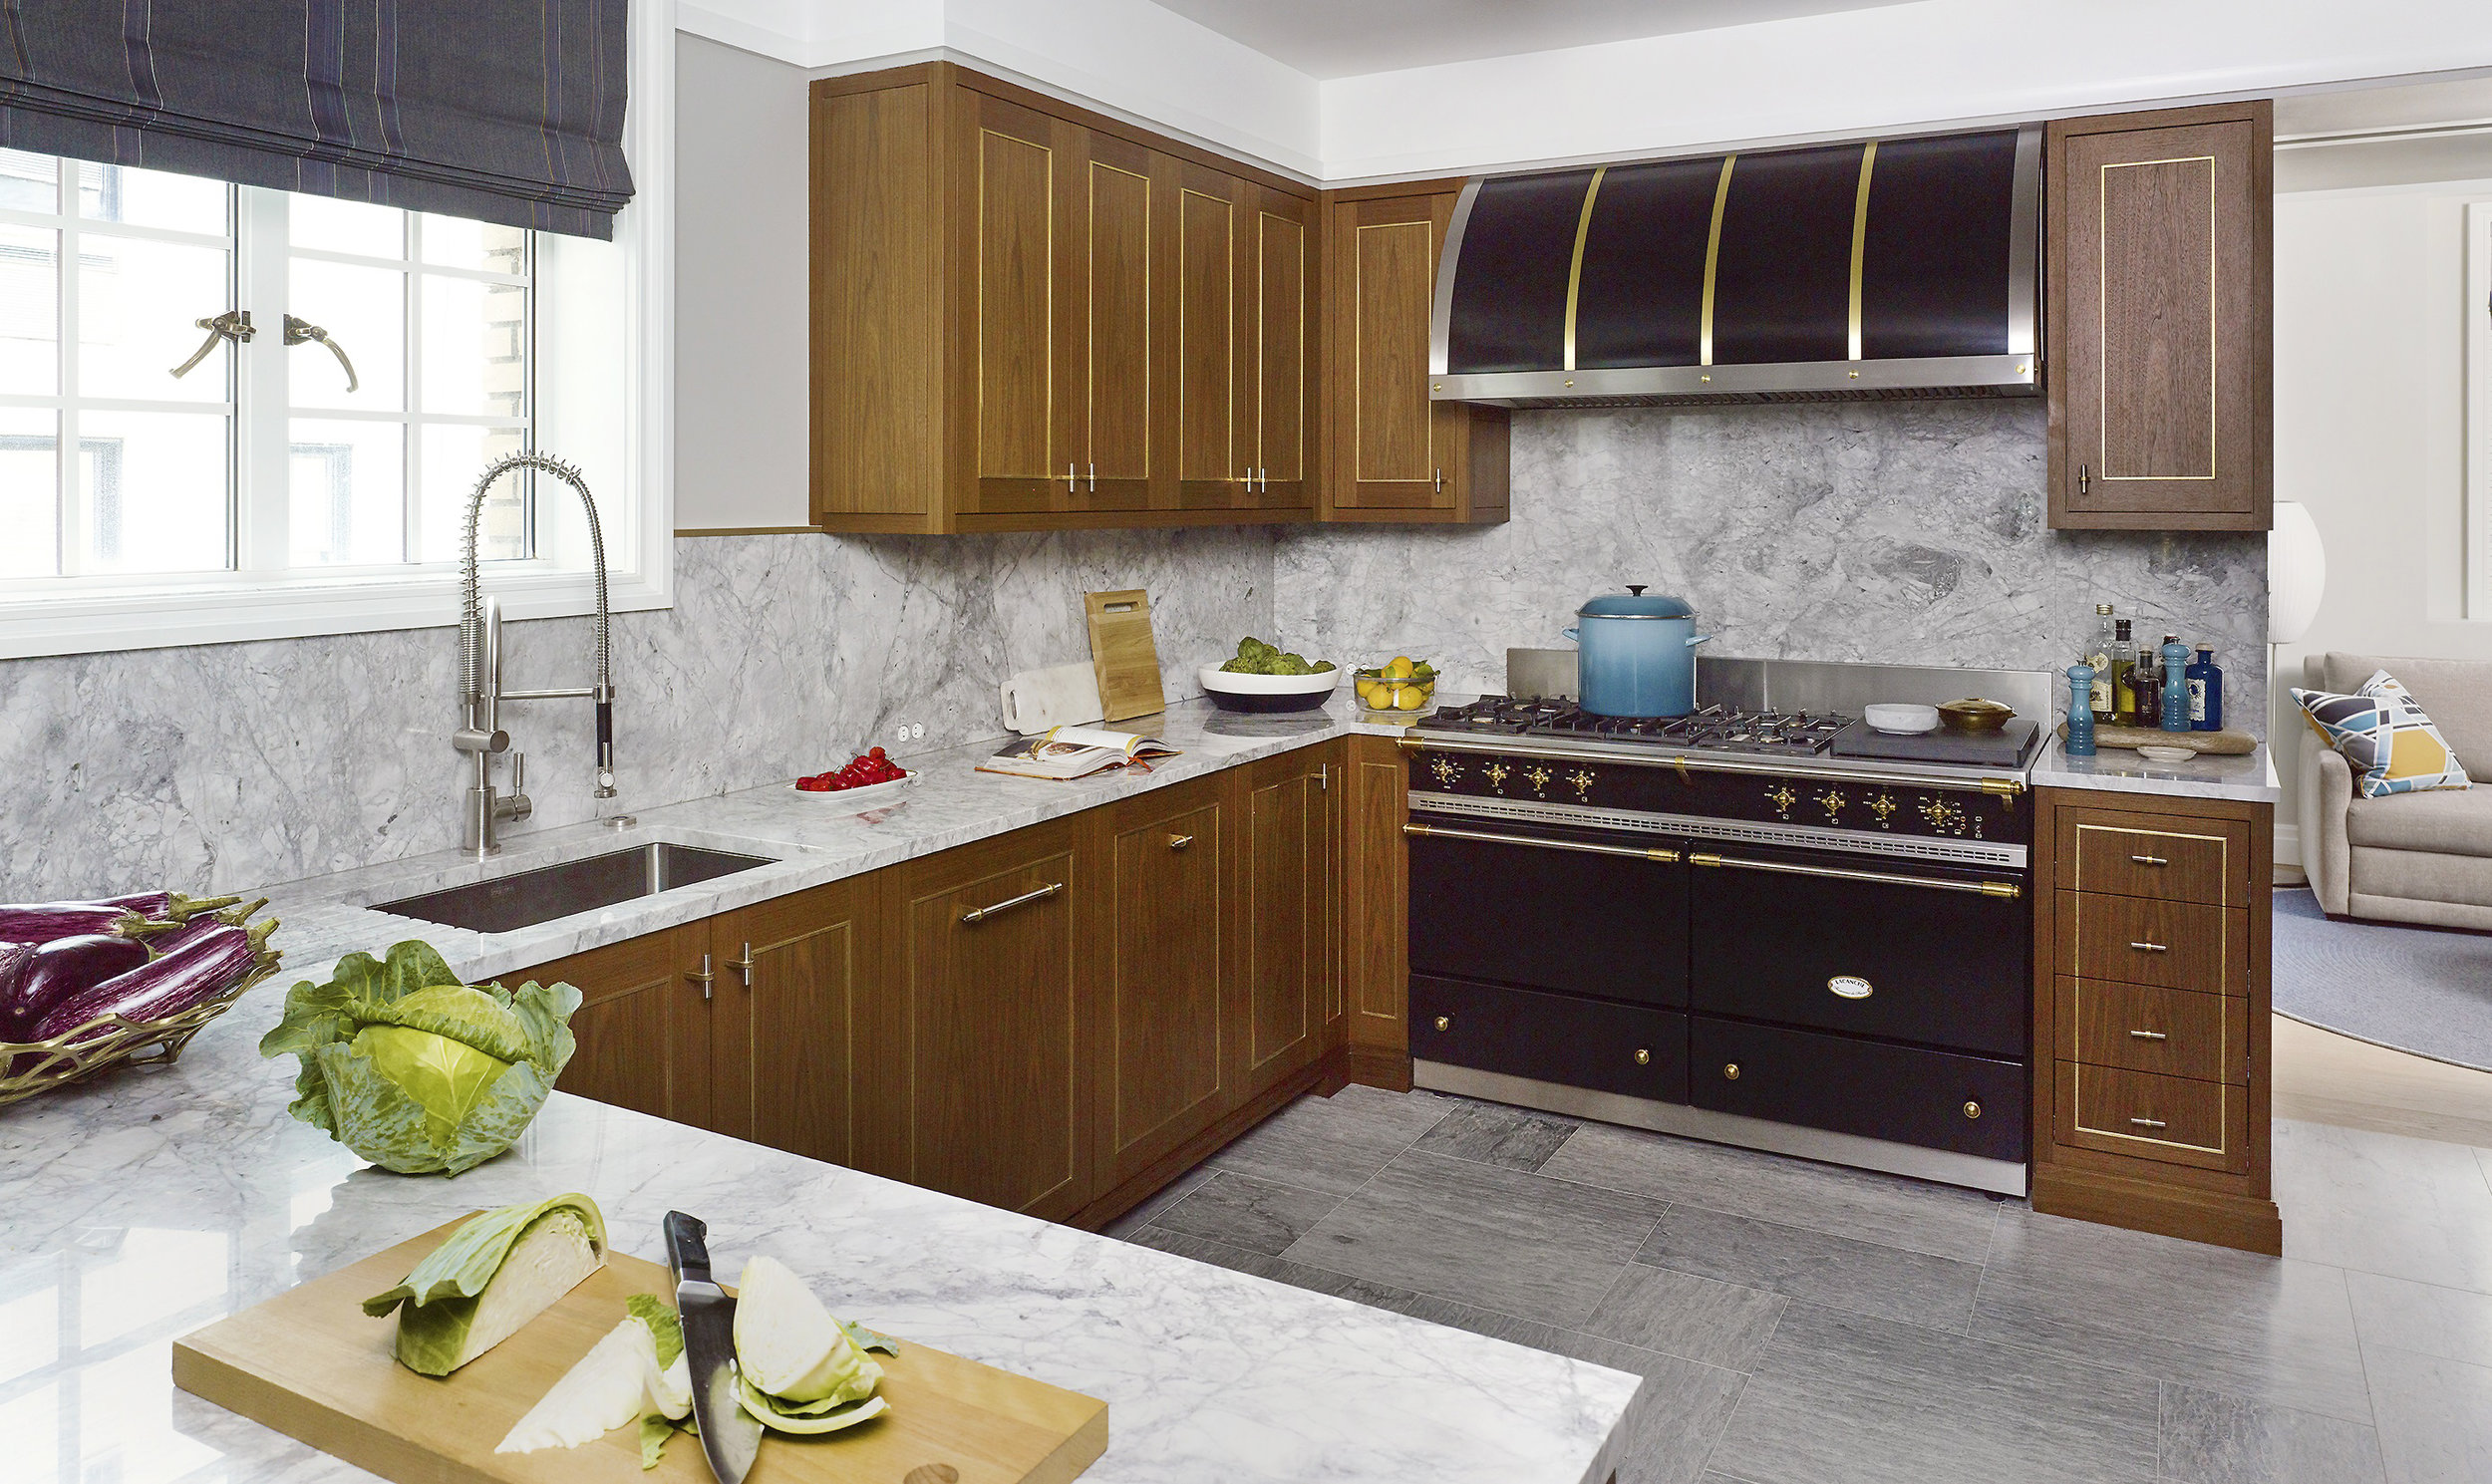 Stonefox 115 East 67th Street Kitchen MEP designed by 2L Engineering